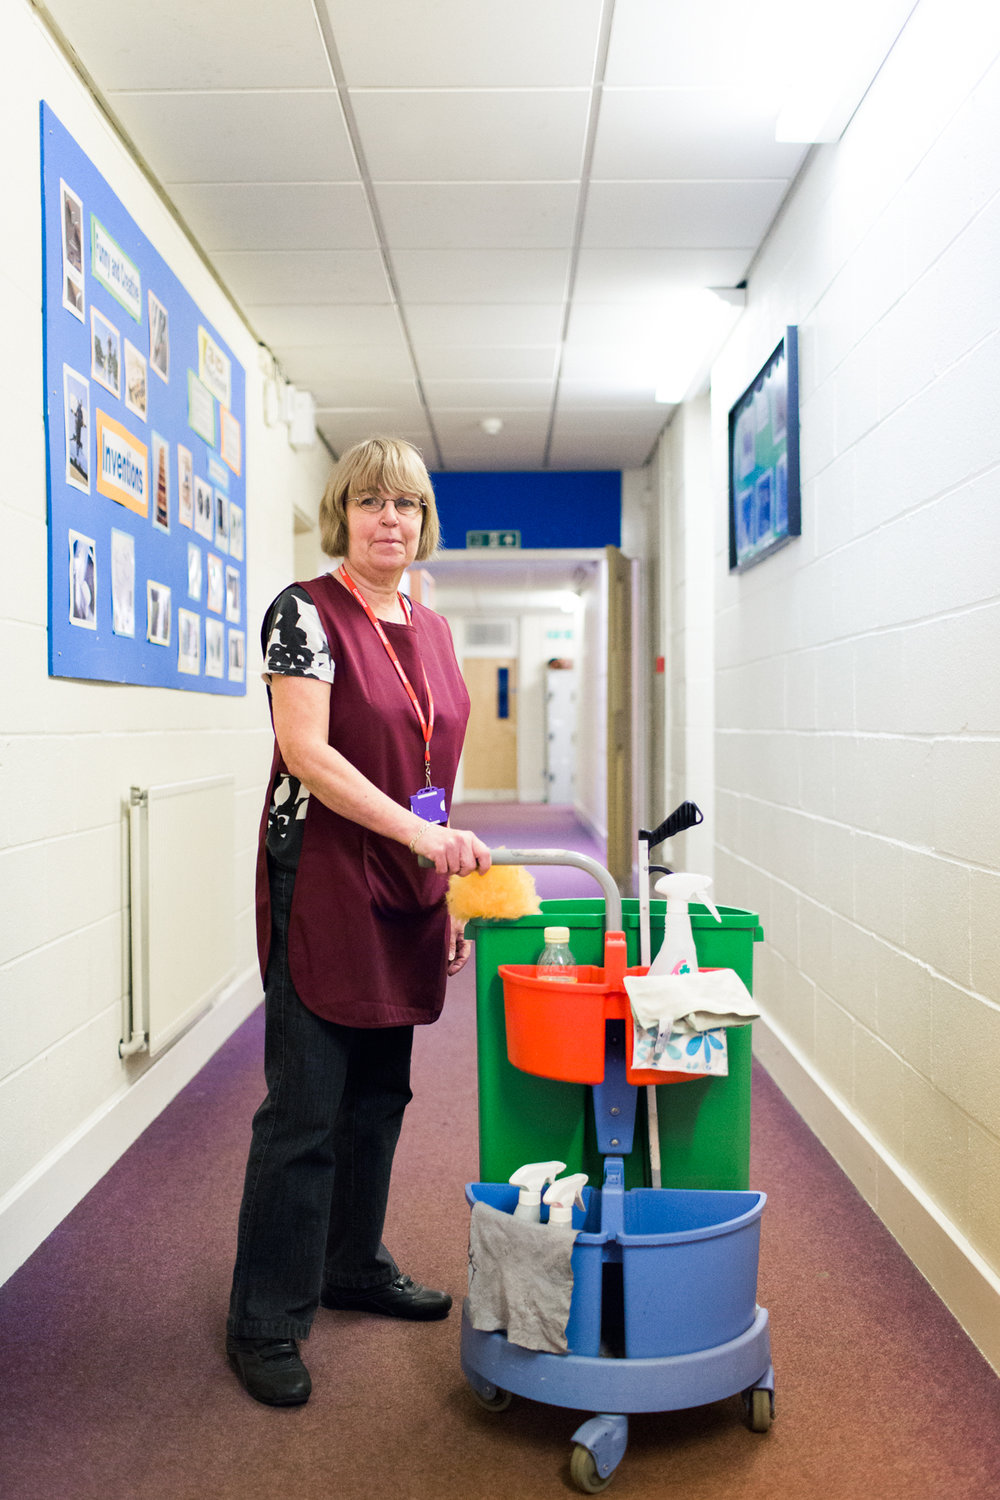 Sue said 'I love my job and being around the place. I like to go back in (to the classrooms) and look at them and think I've done a really good job there'.